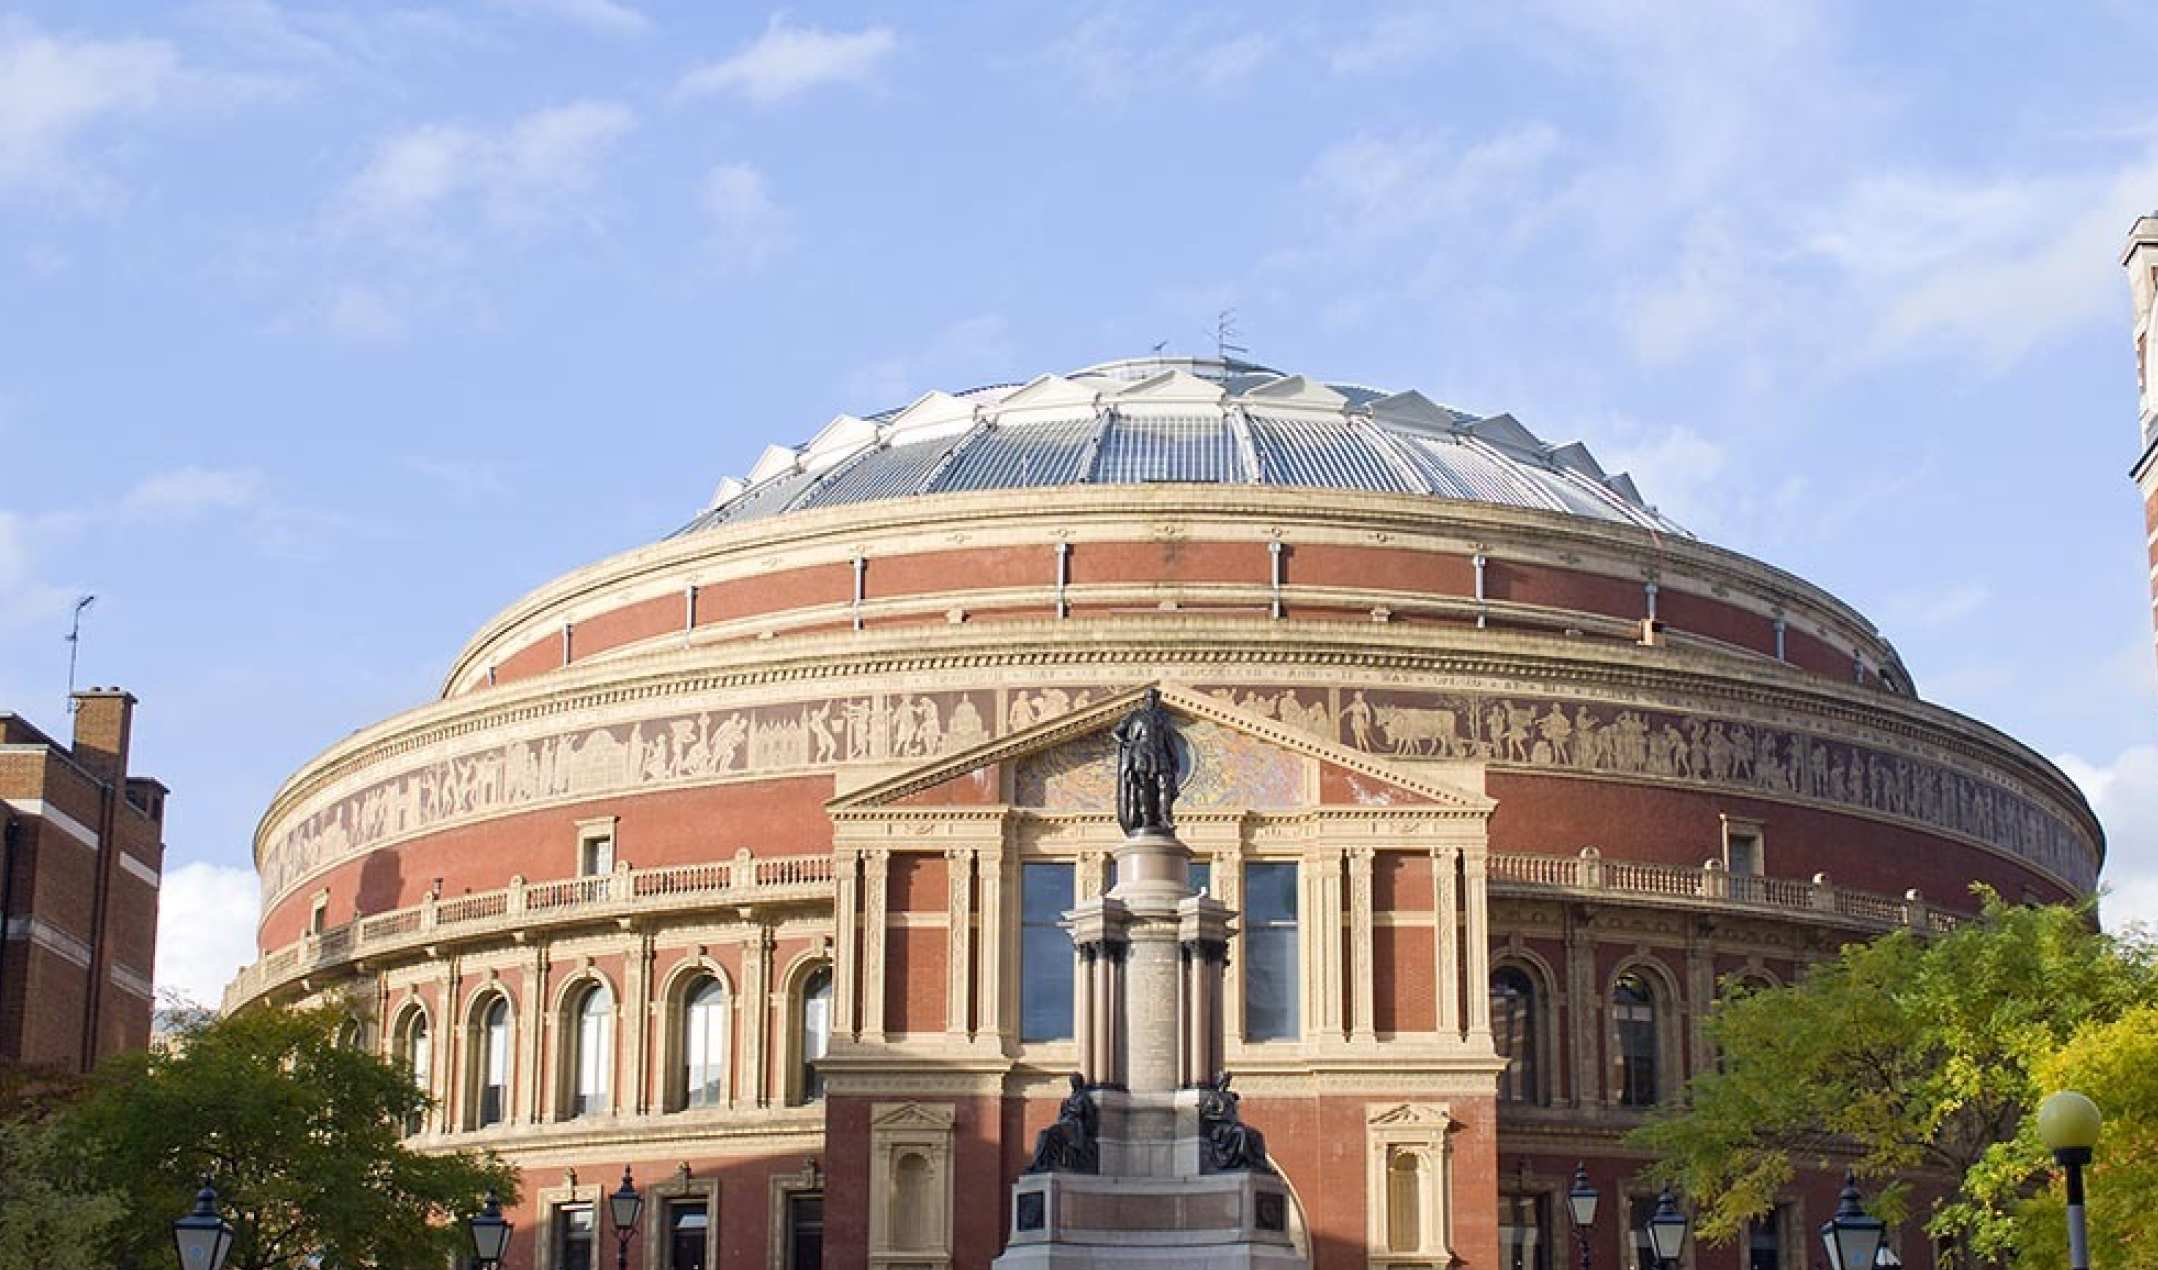 Prince 39 s gardens imperial college london for Door 4 royal albert hall